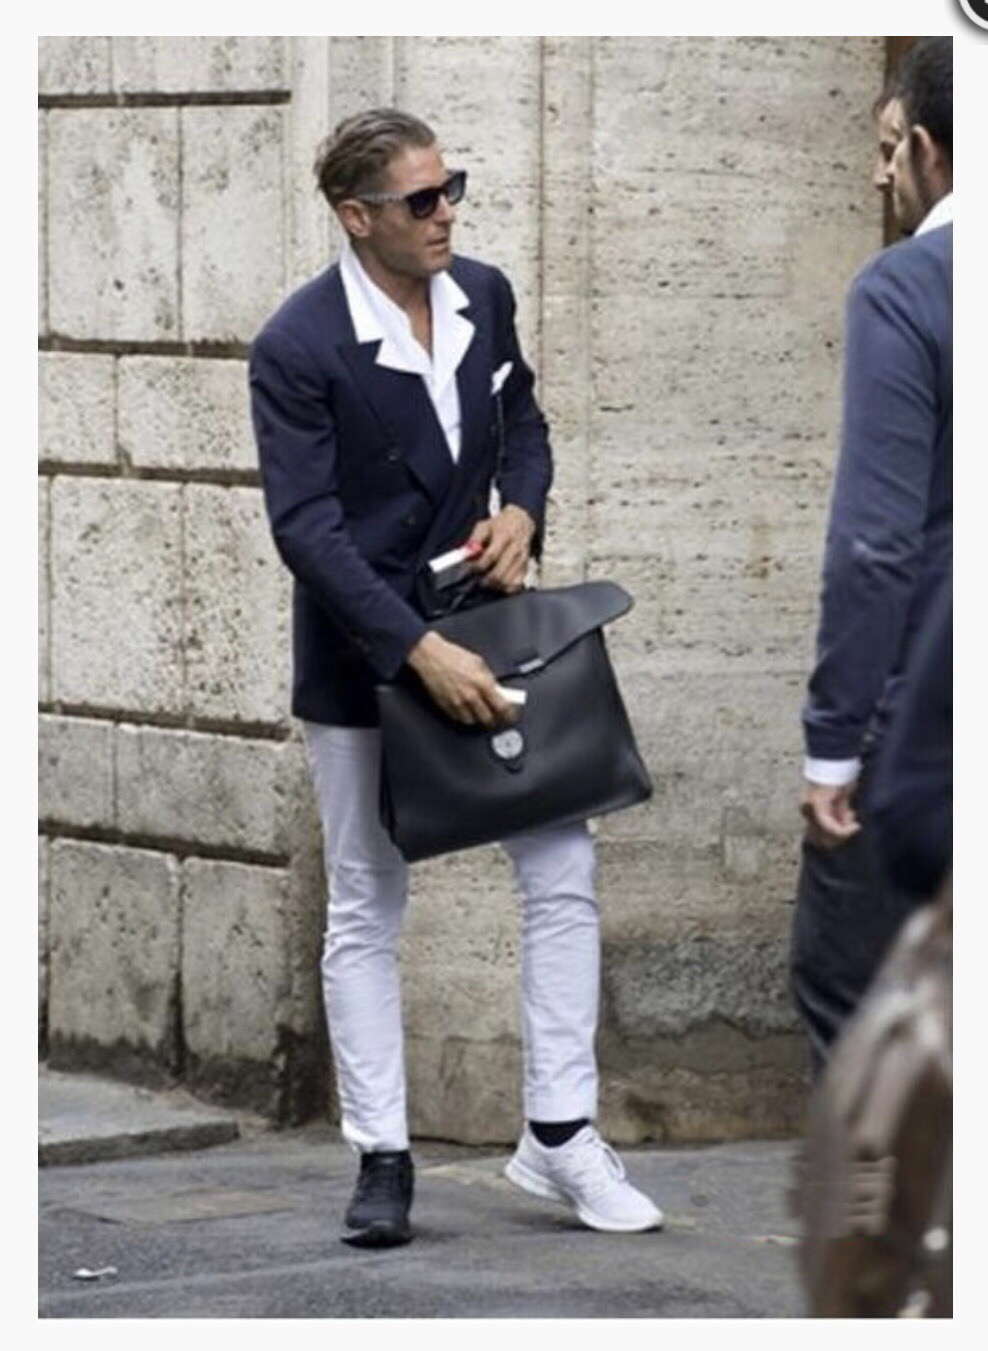 Lapo Elkann with mismatched shoes